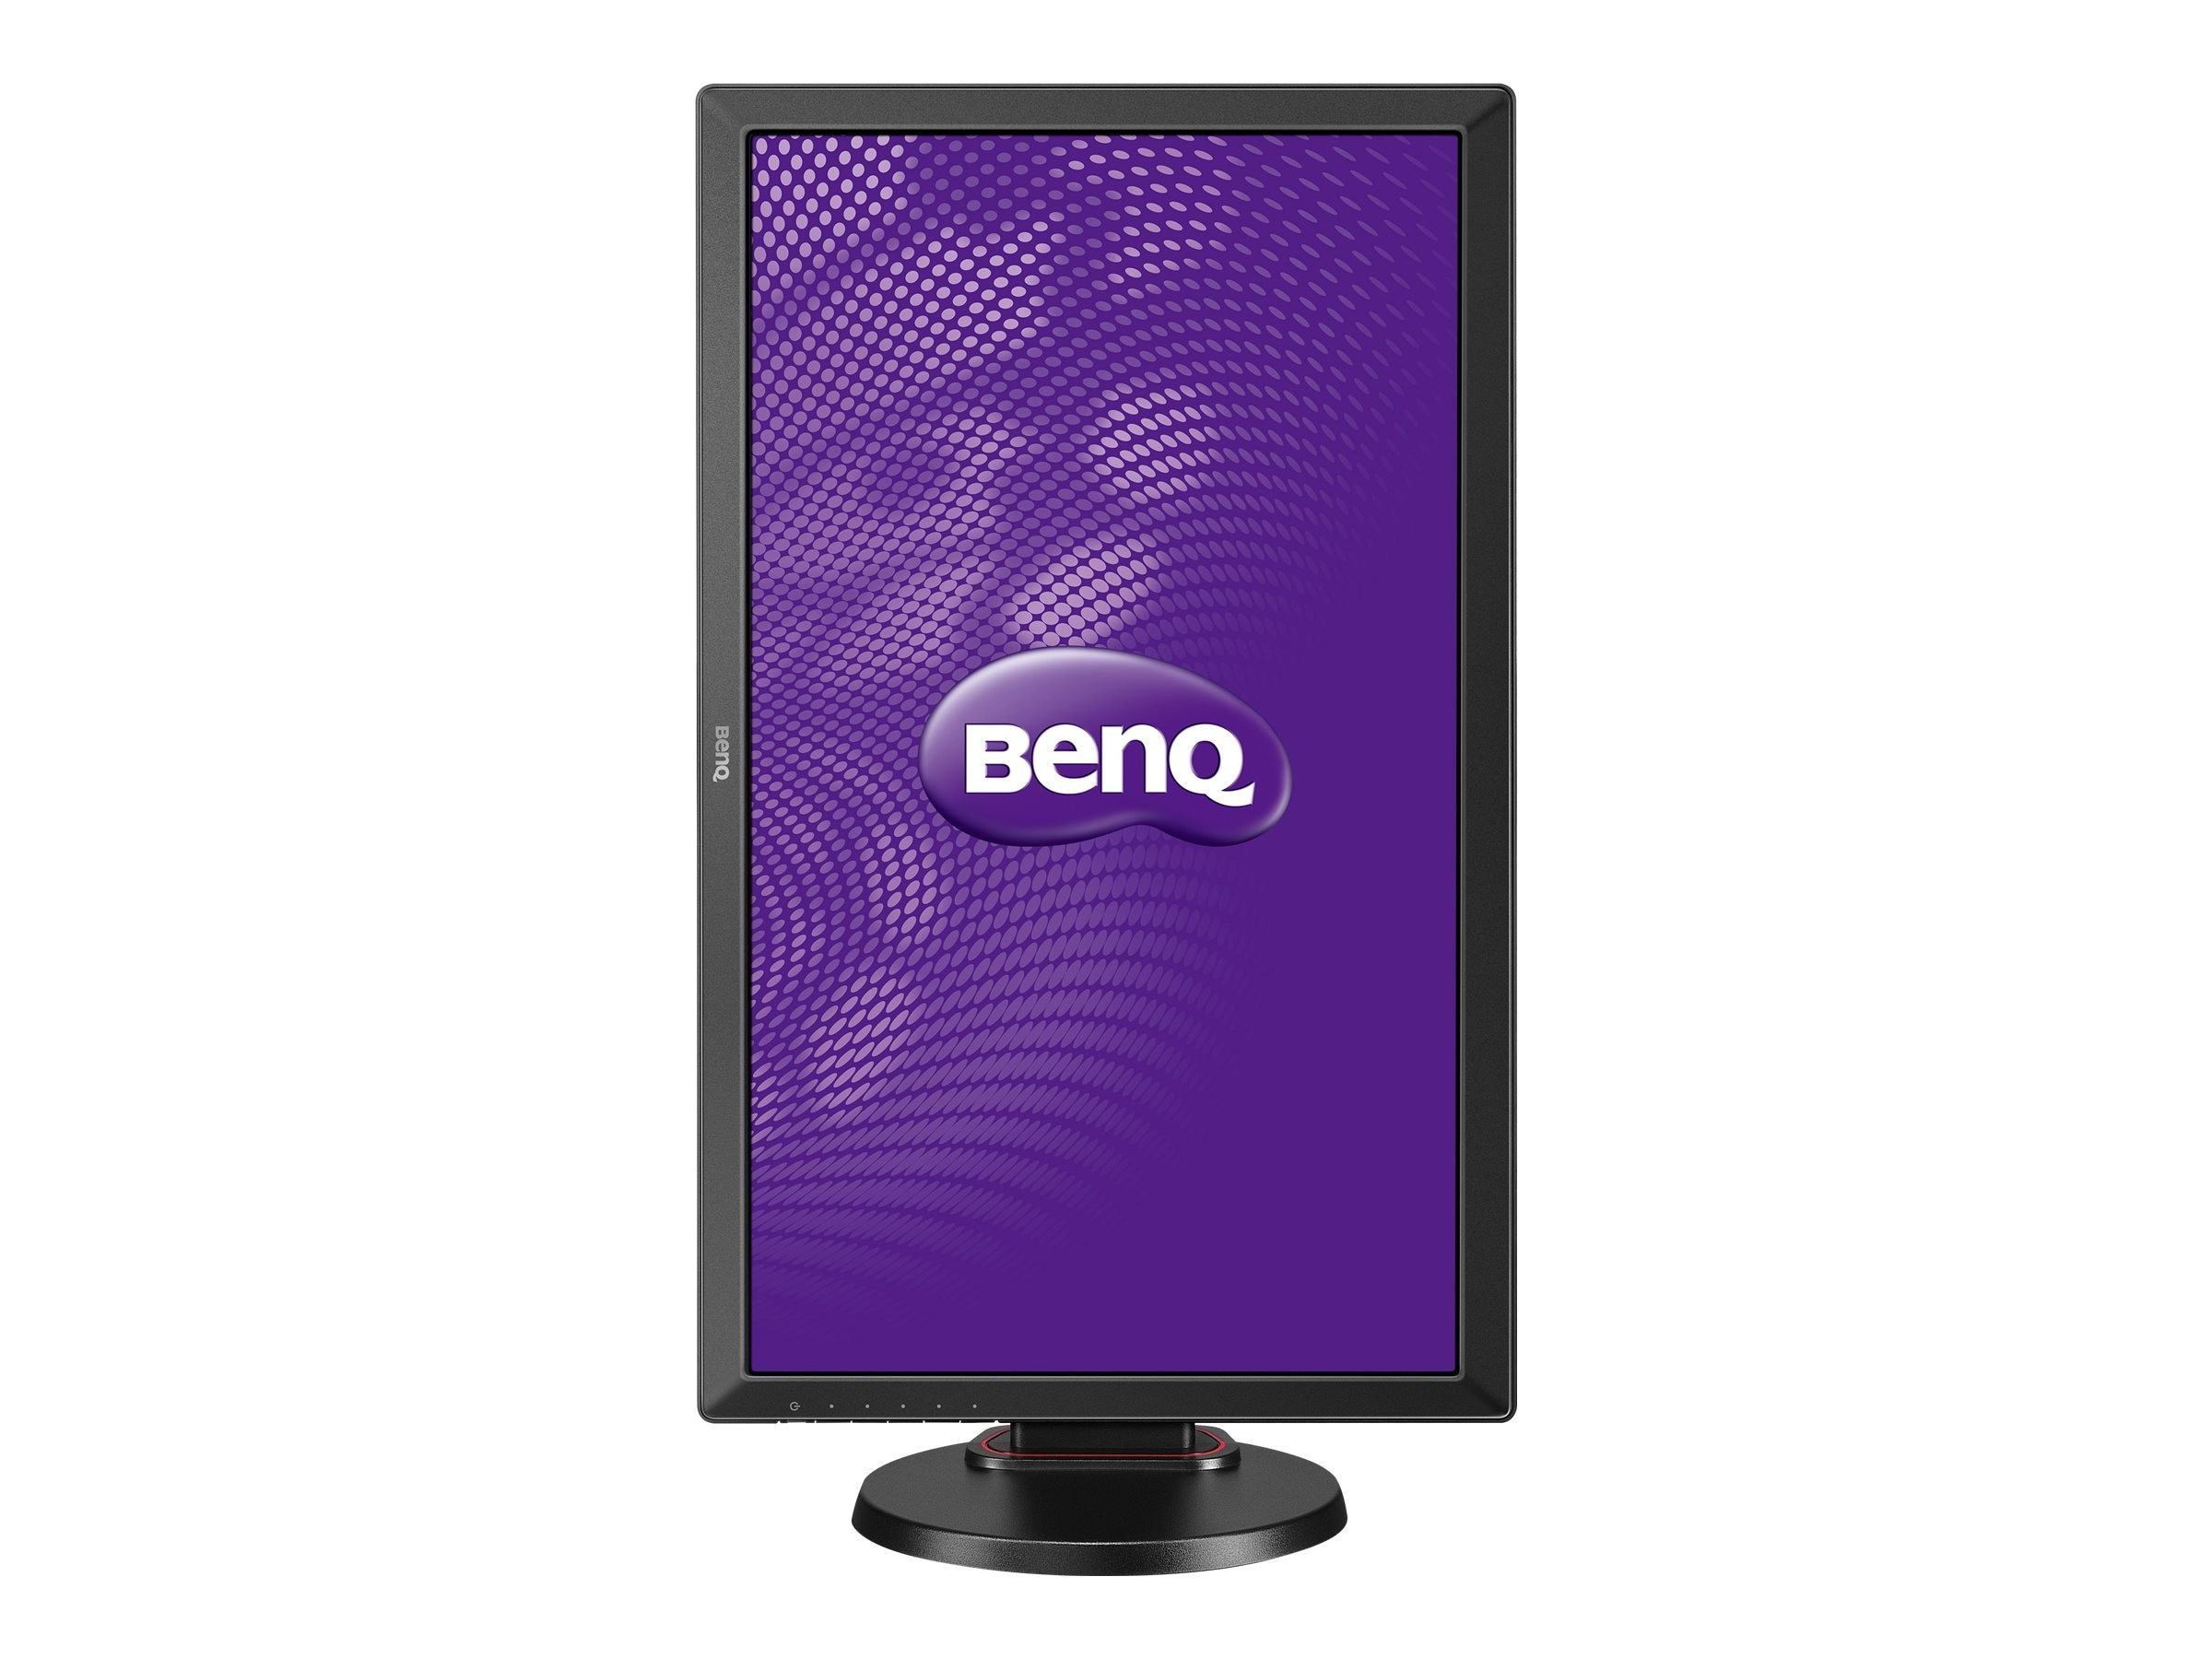 Benq 24 RL2460HT LED-LCD Monitor, Black, RL2460HT, 16946079, Monitors - LED-LCD